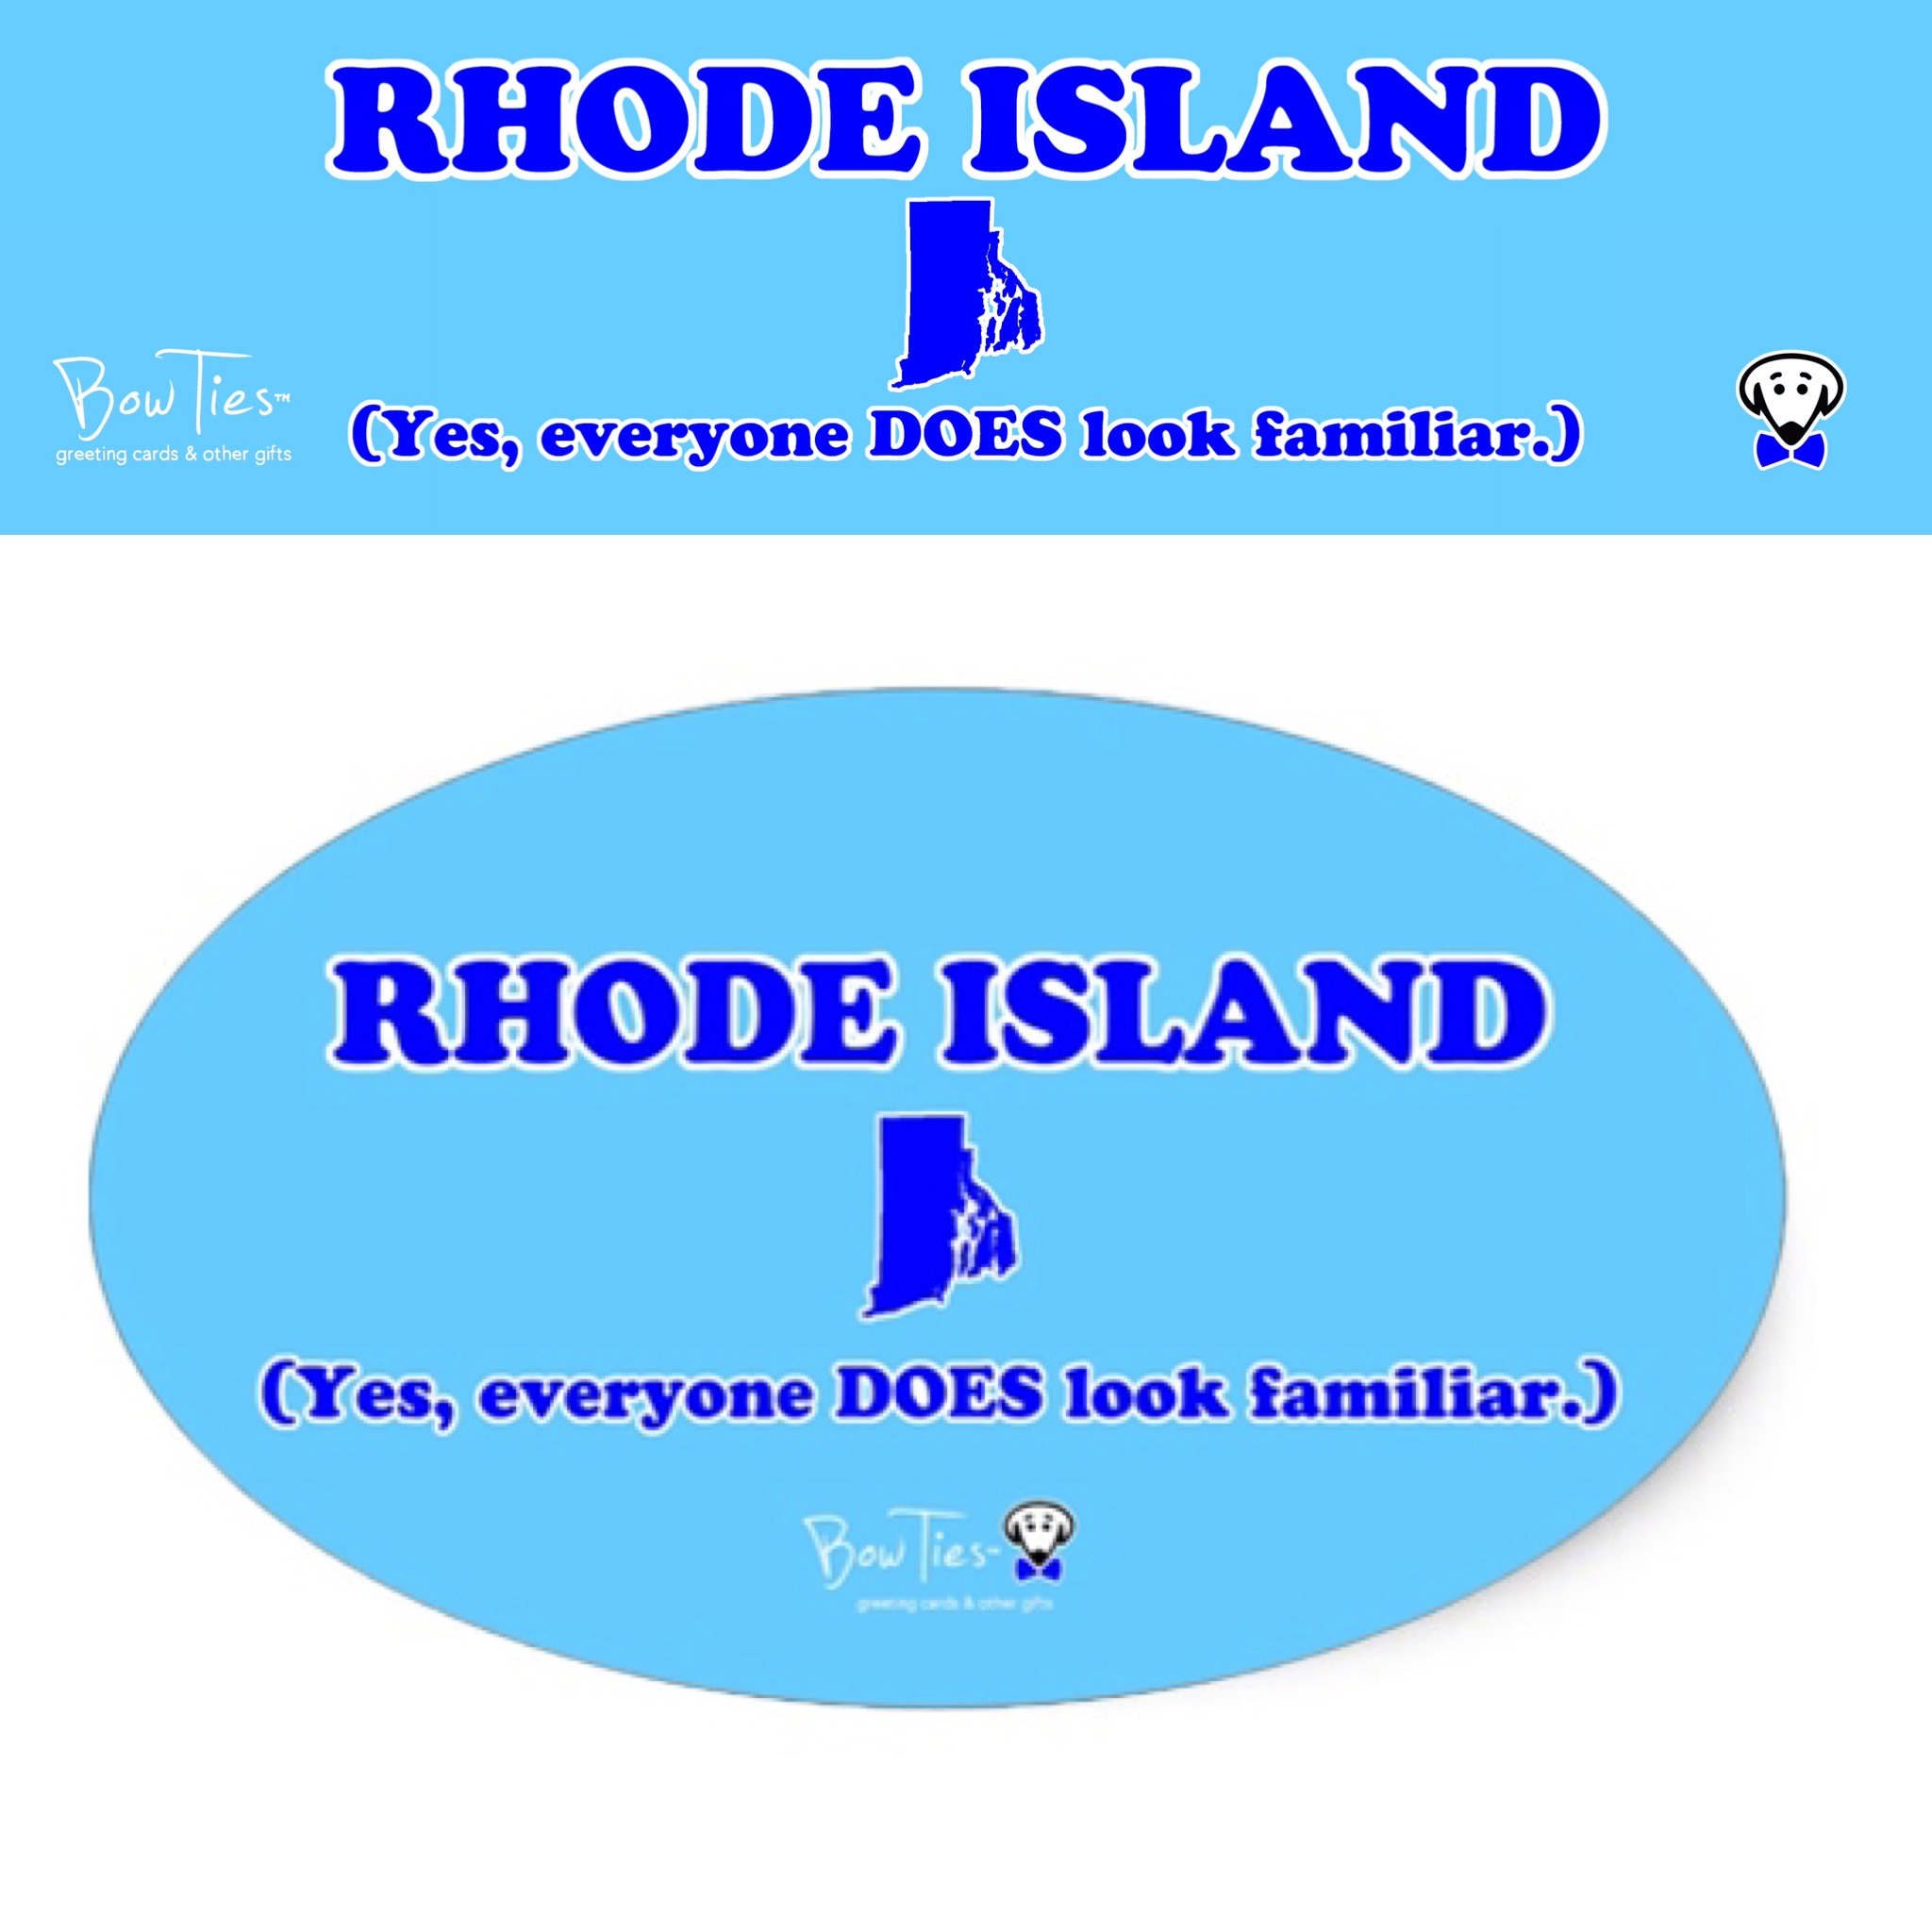 RHODE ISLAND (Yes, everyone DOES look familiar.)